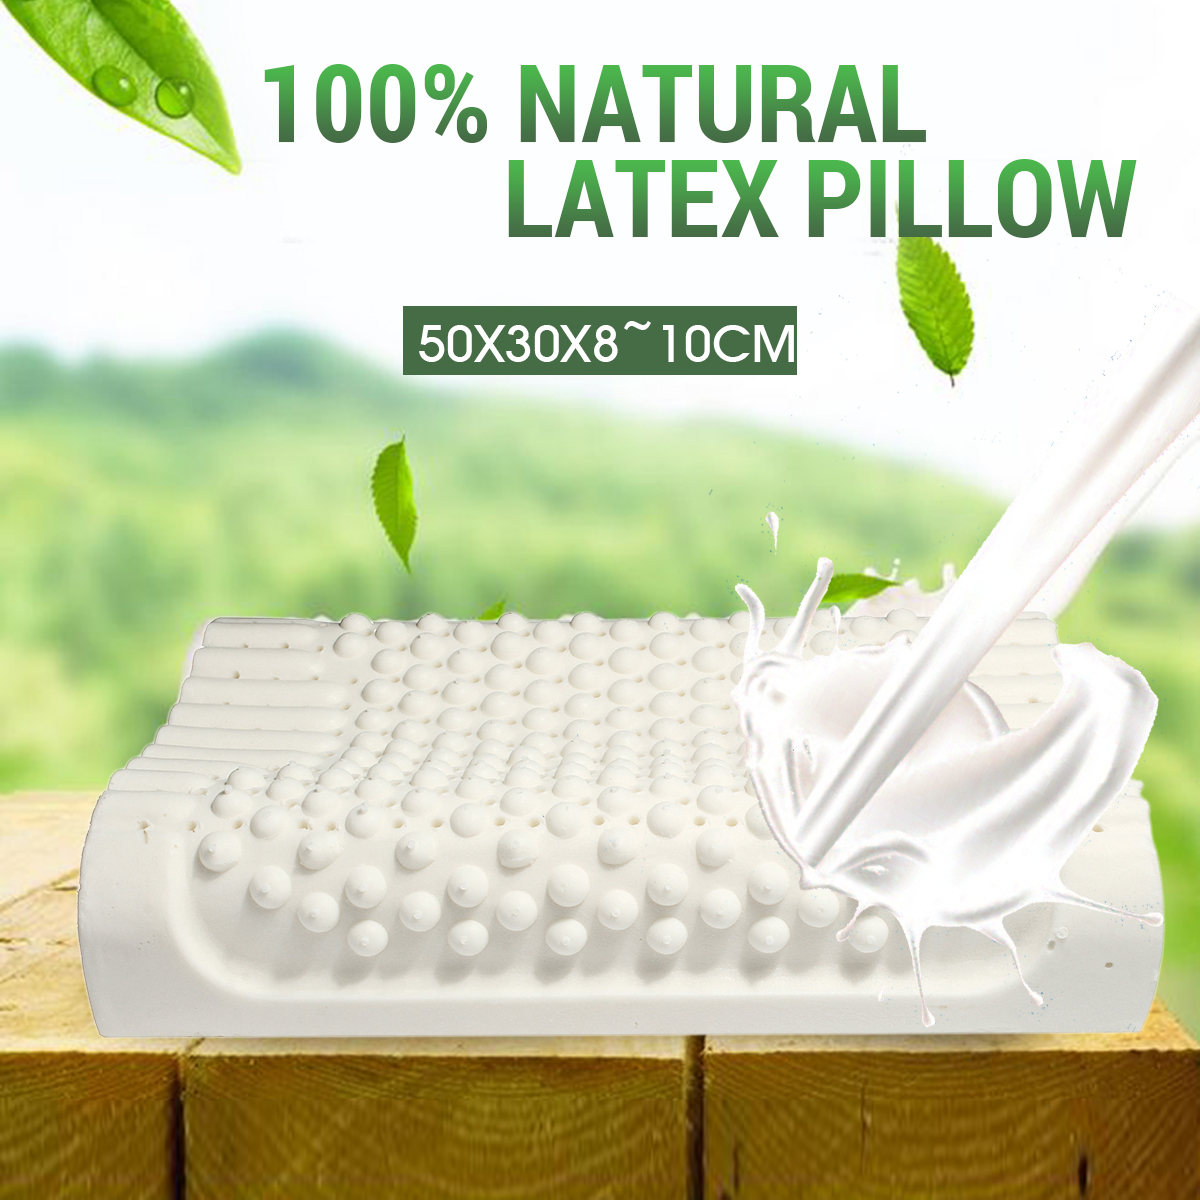 100% Natural Standard Latex Pillow comfort for Neck Pain and Fatigue Relief